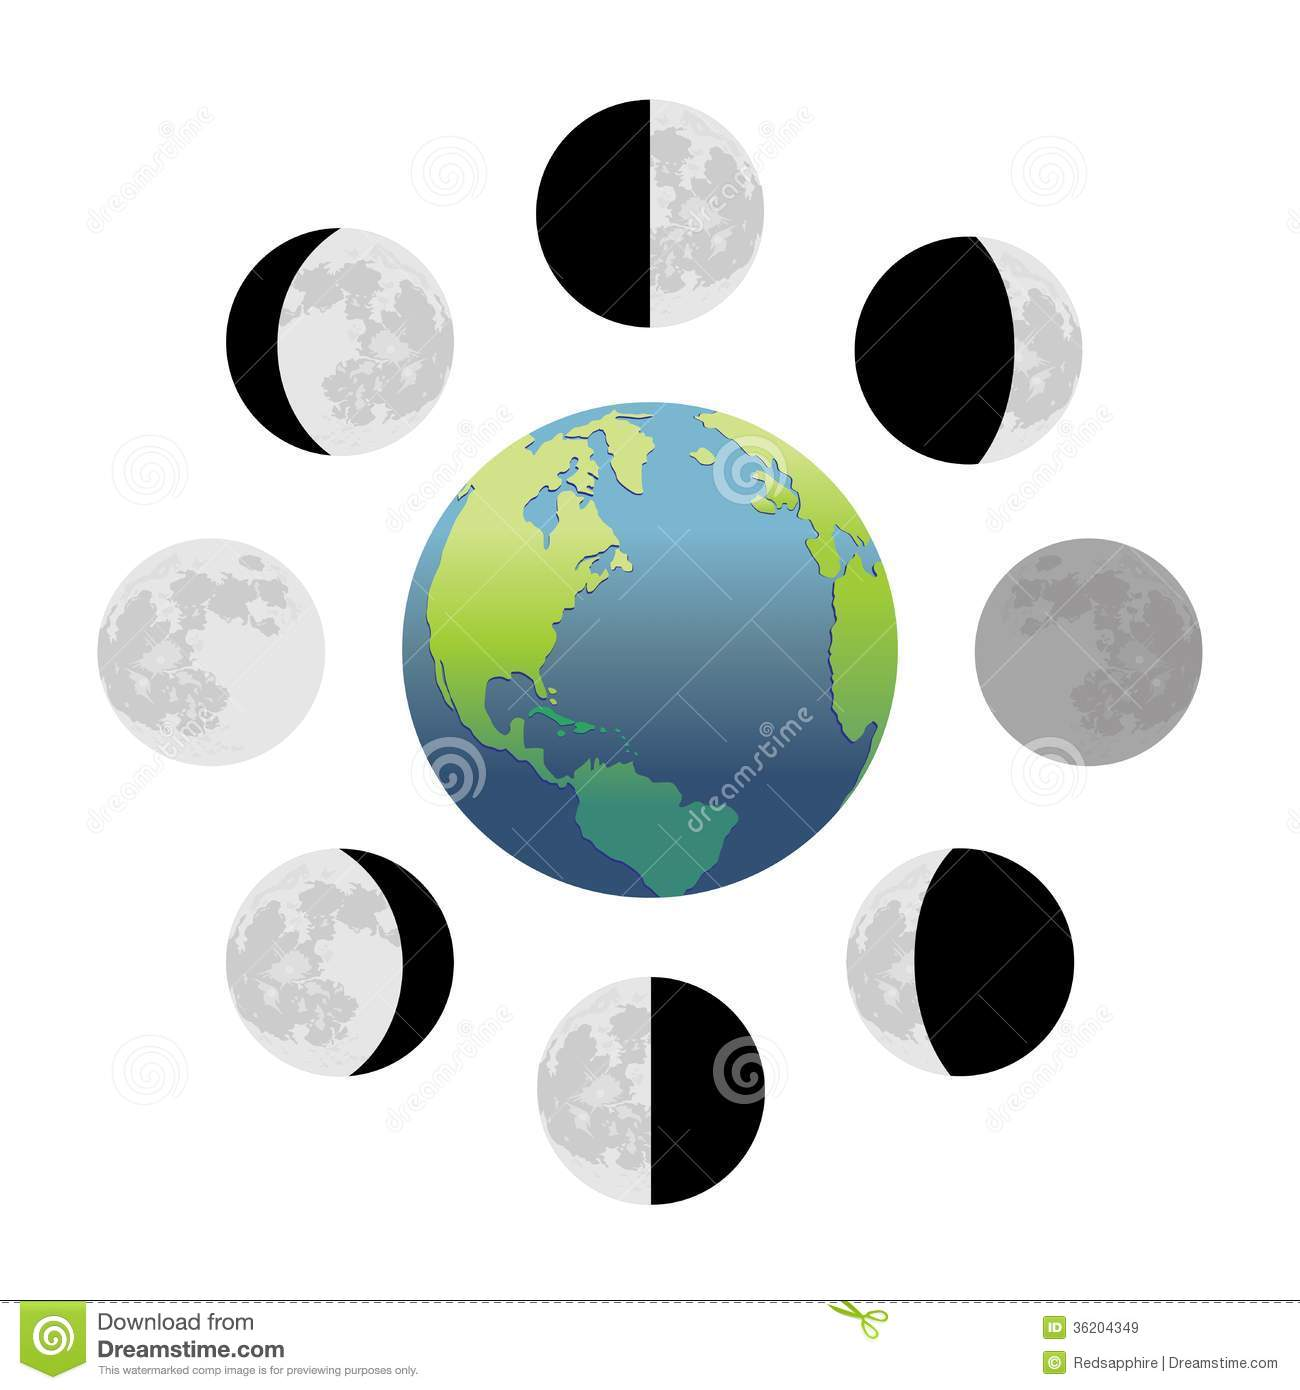 moon phases around the earth - photo #20